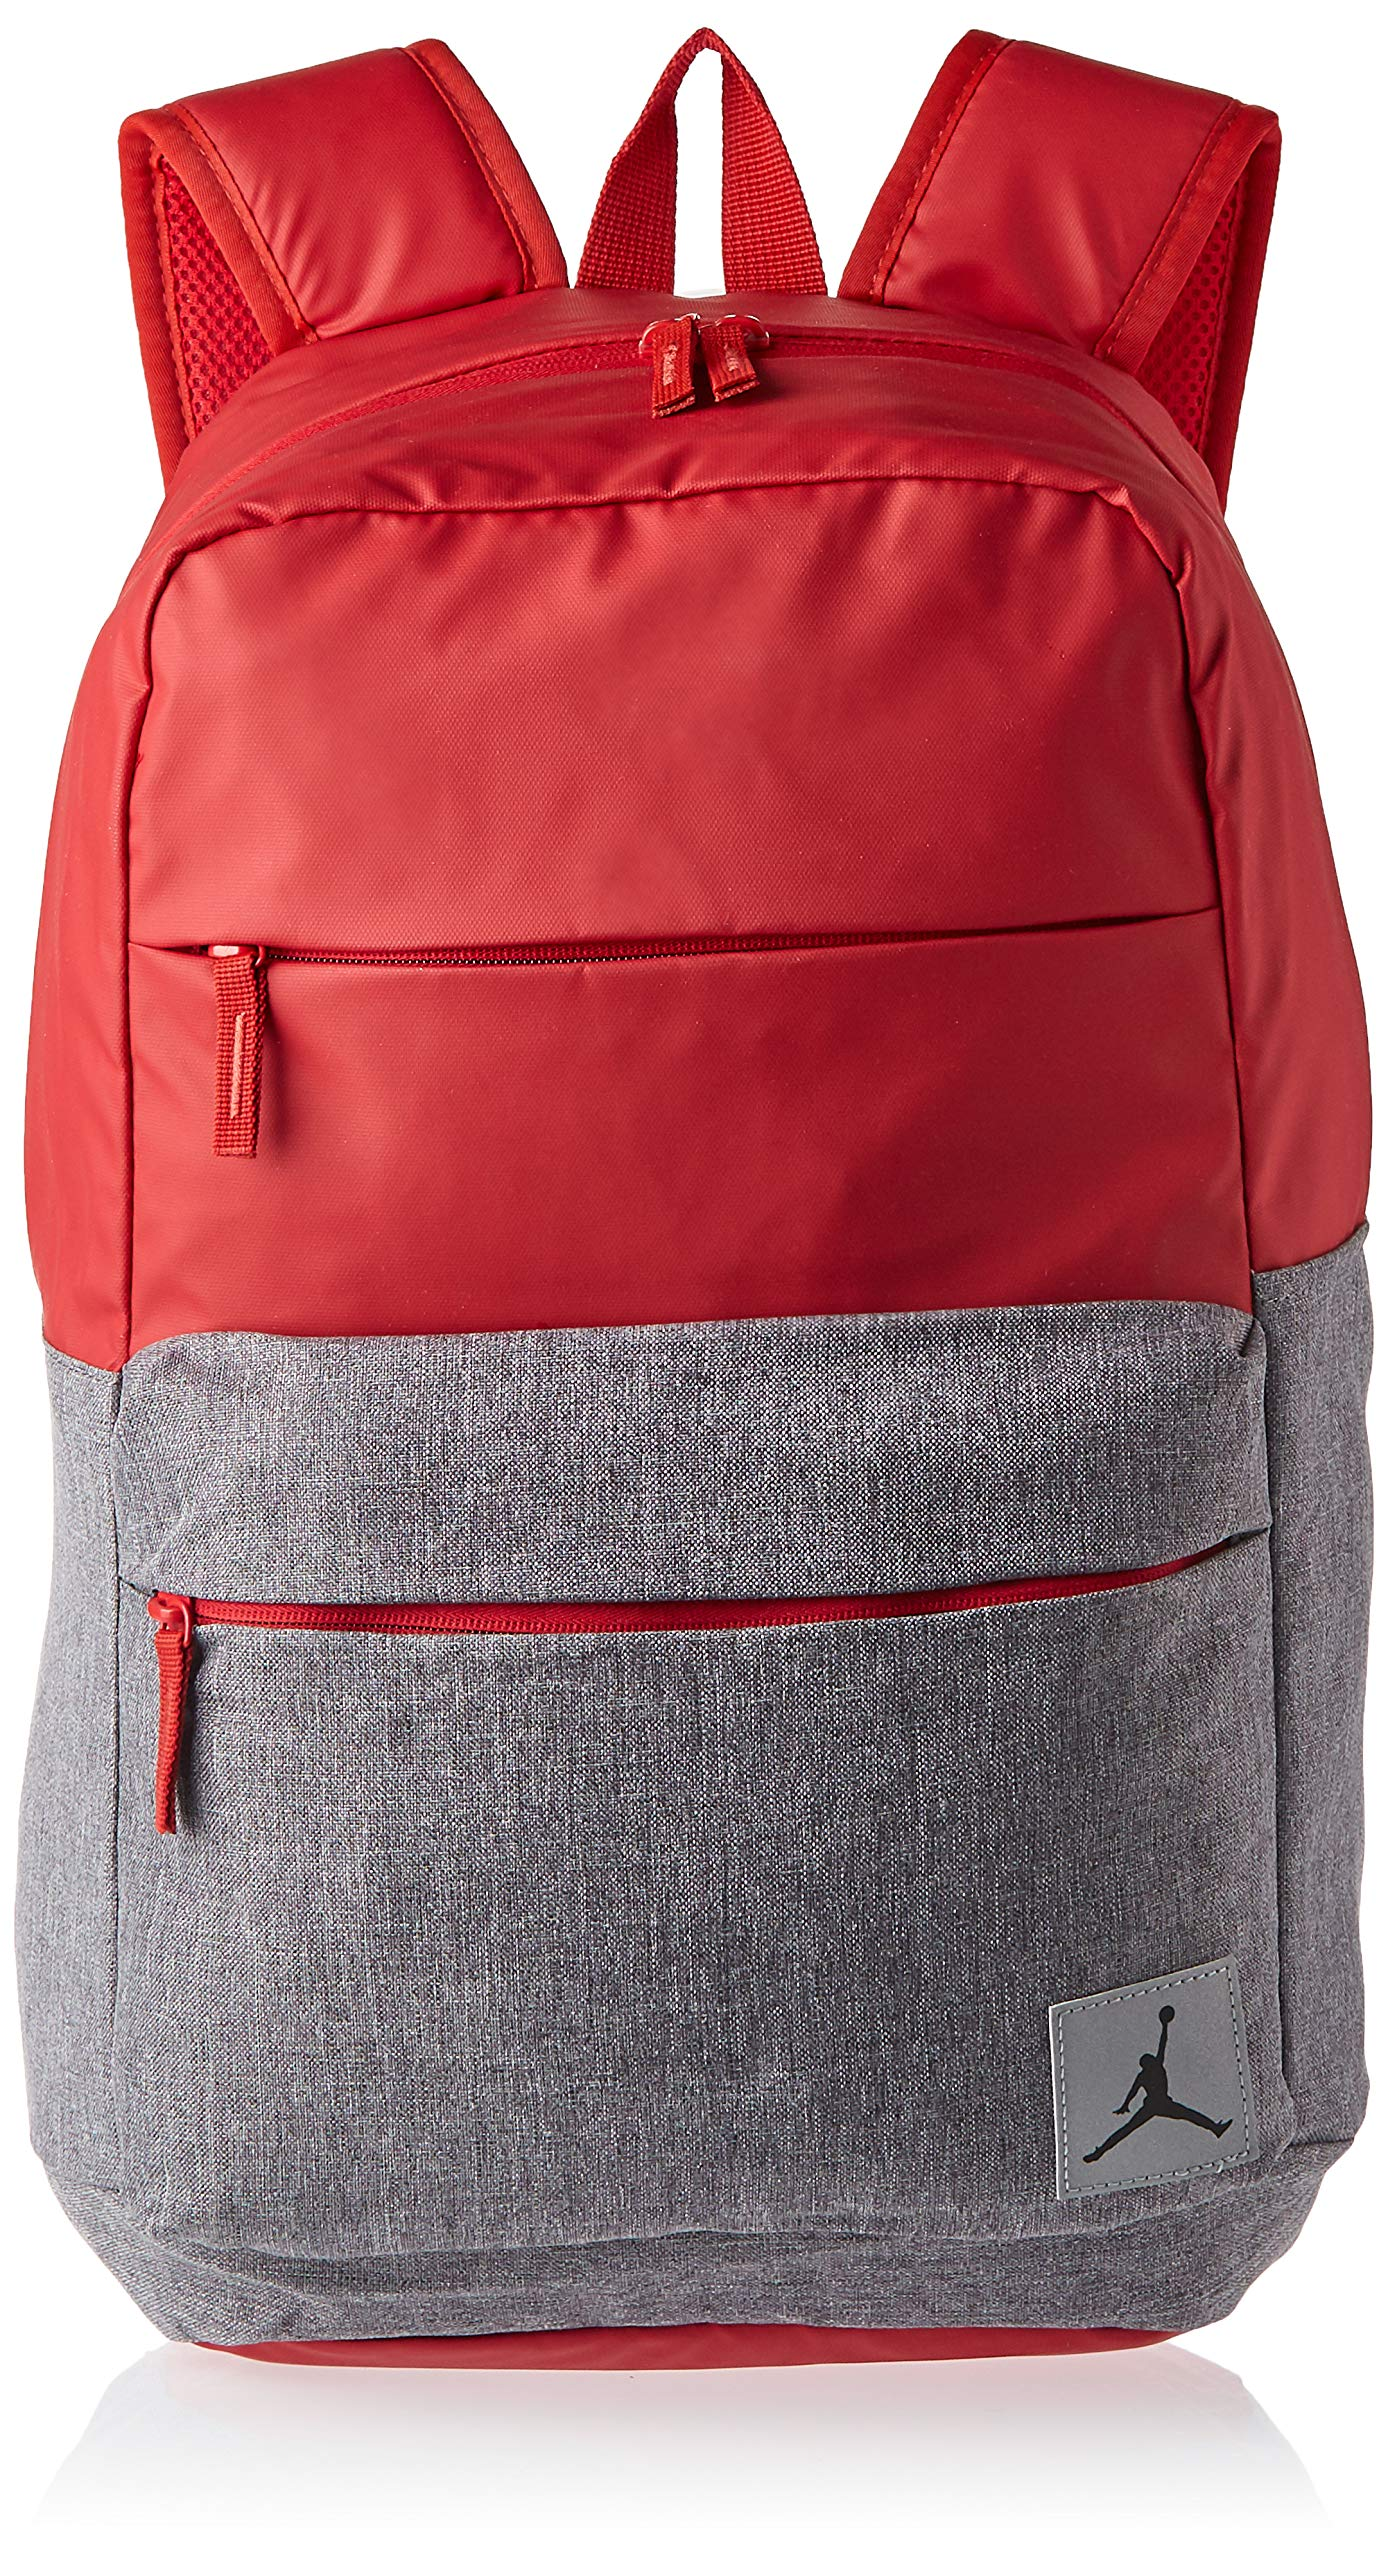 Nike Jordan Pivot Colorblocked Classic School Backpack (Gym Red) by JUMPMAN